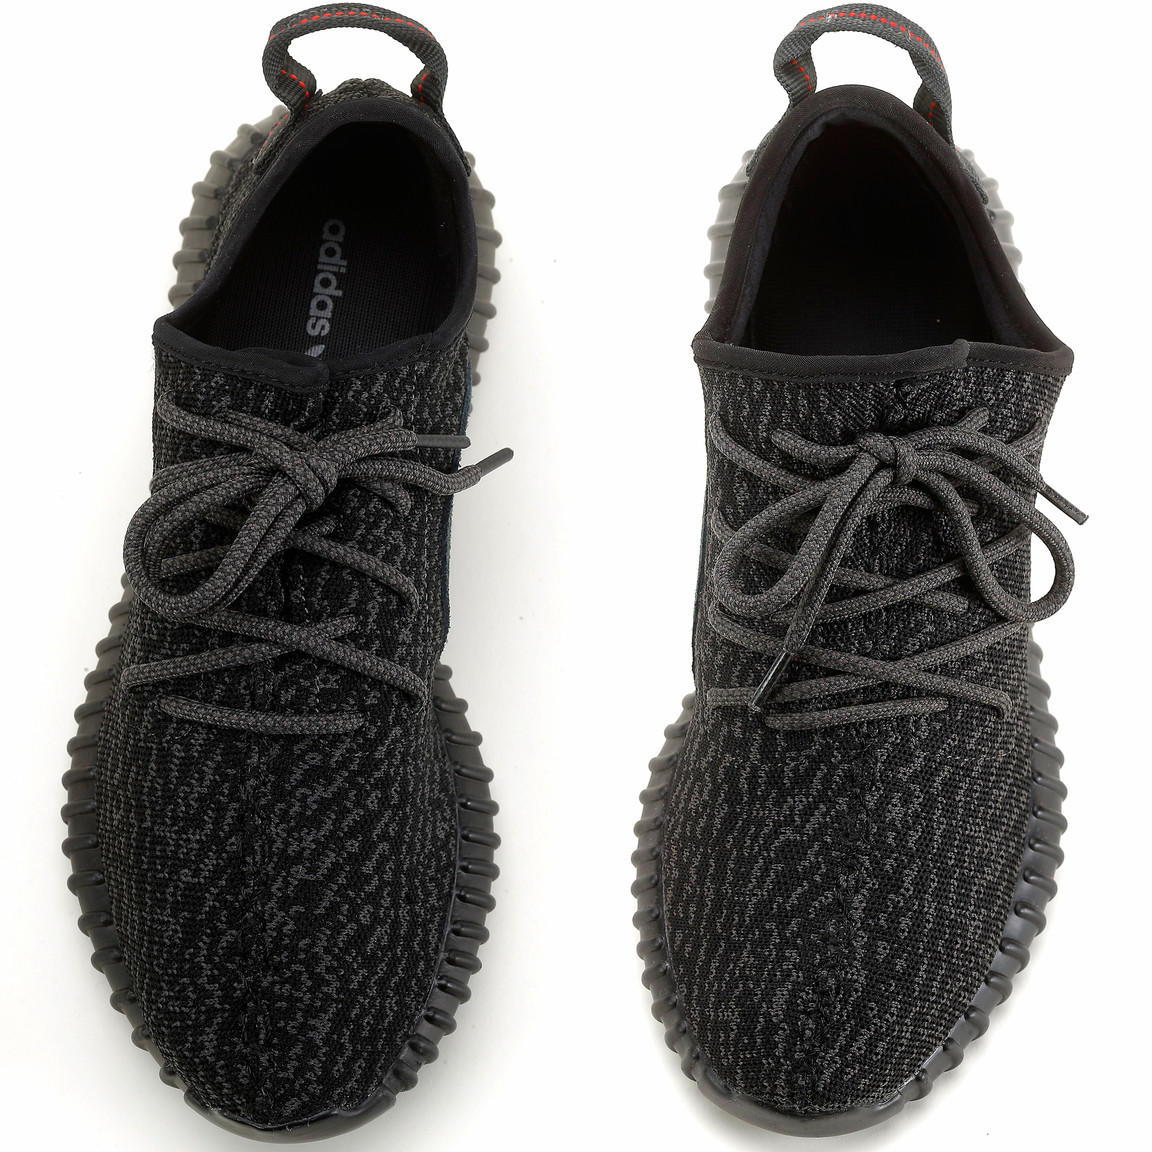 0c01a79c0 Counterfeit Yeezys and the booming sneaker black market - Los ...